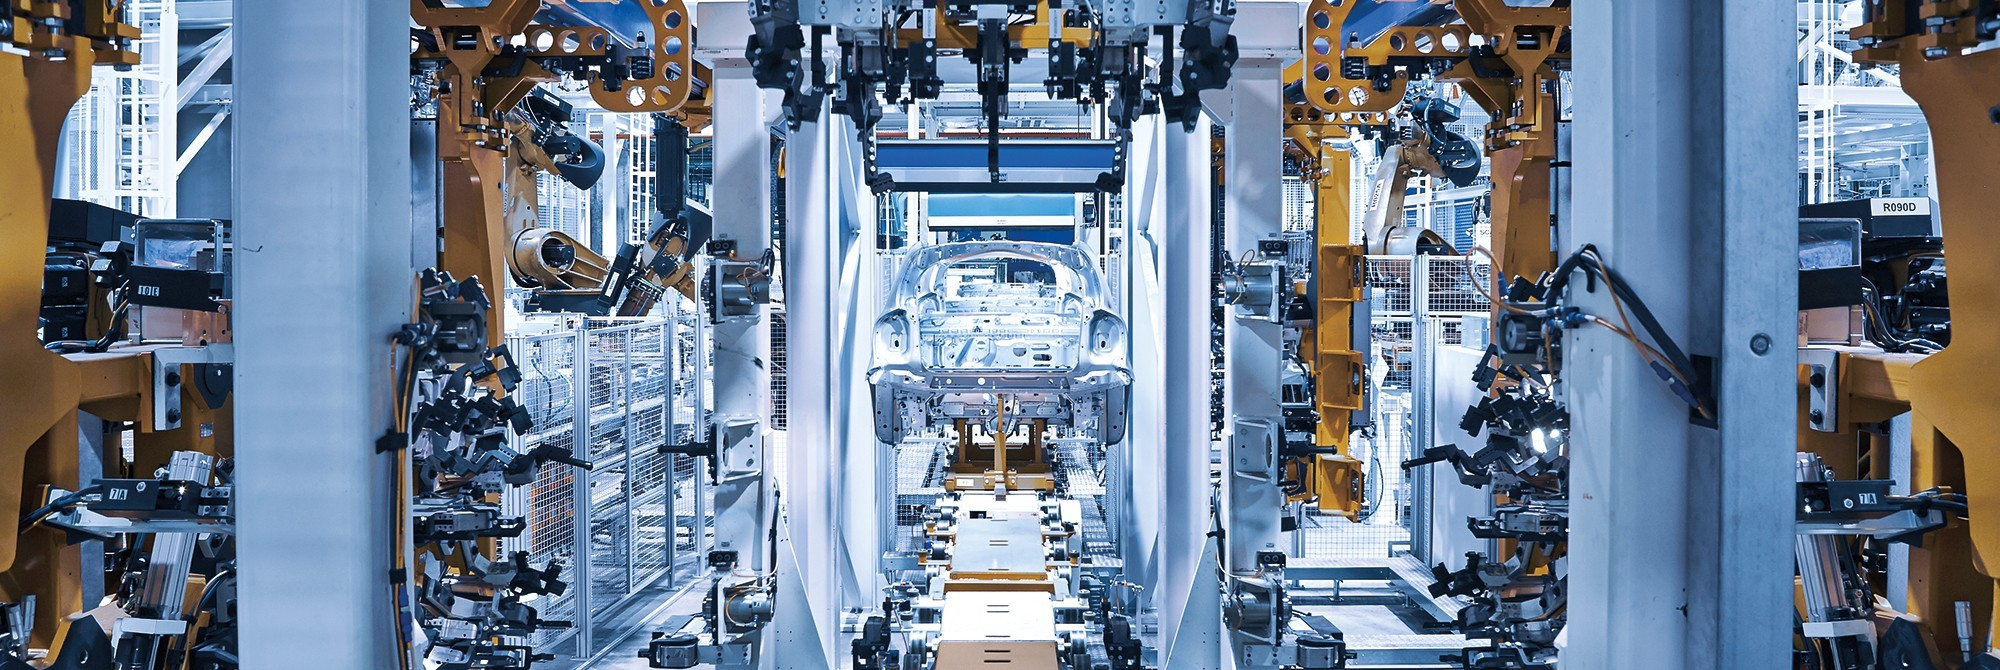 Industry Report of the Mechanical Engineering Industry in Germany